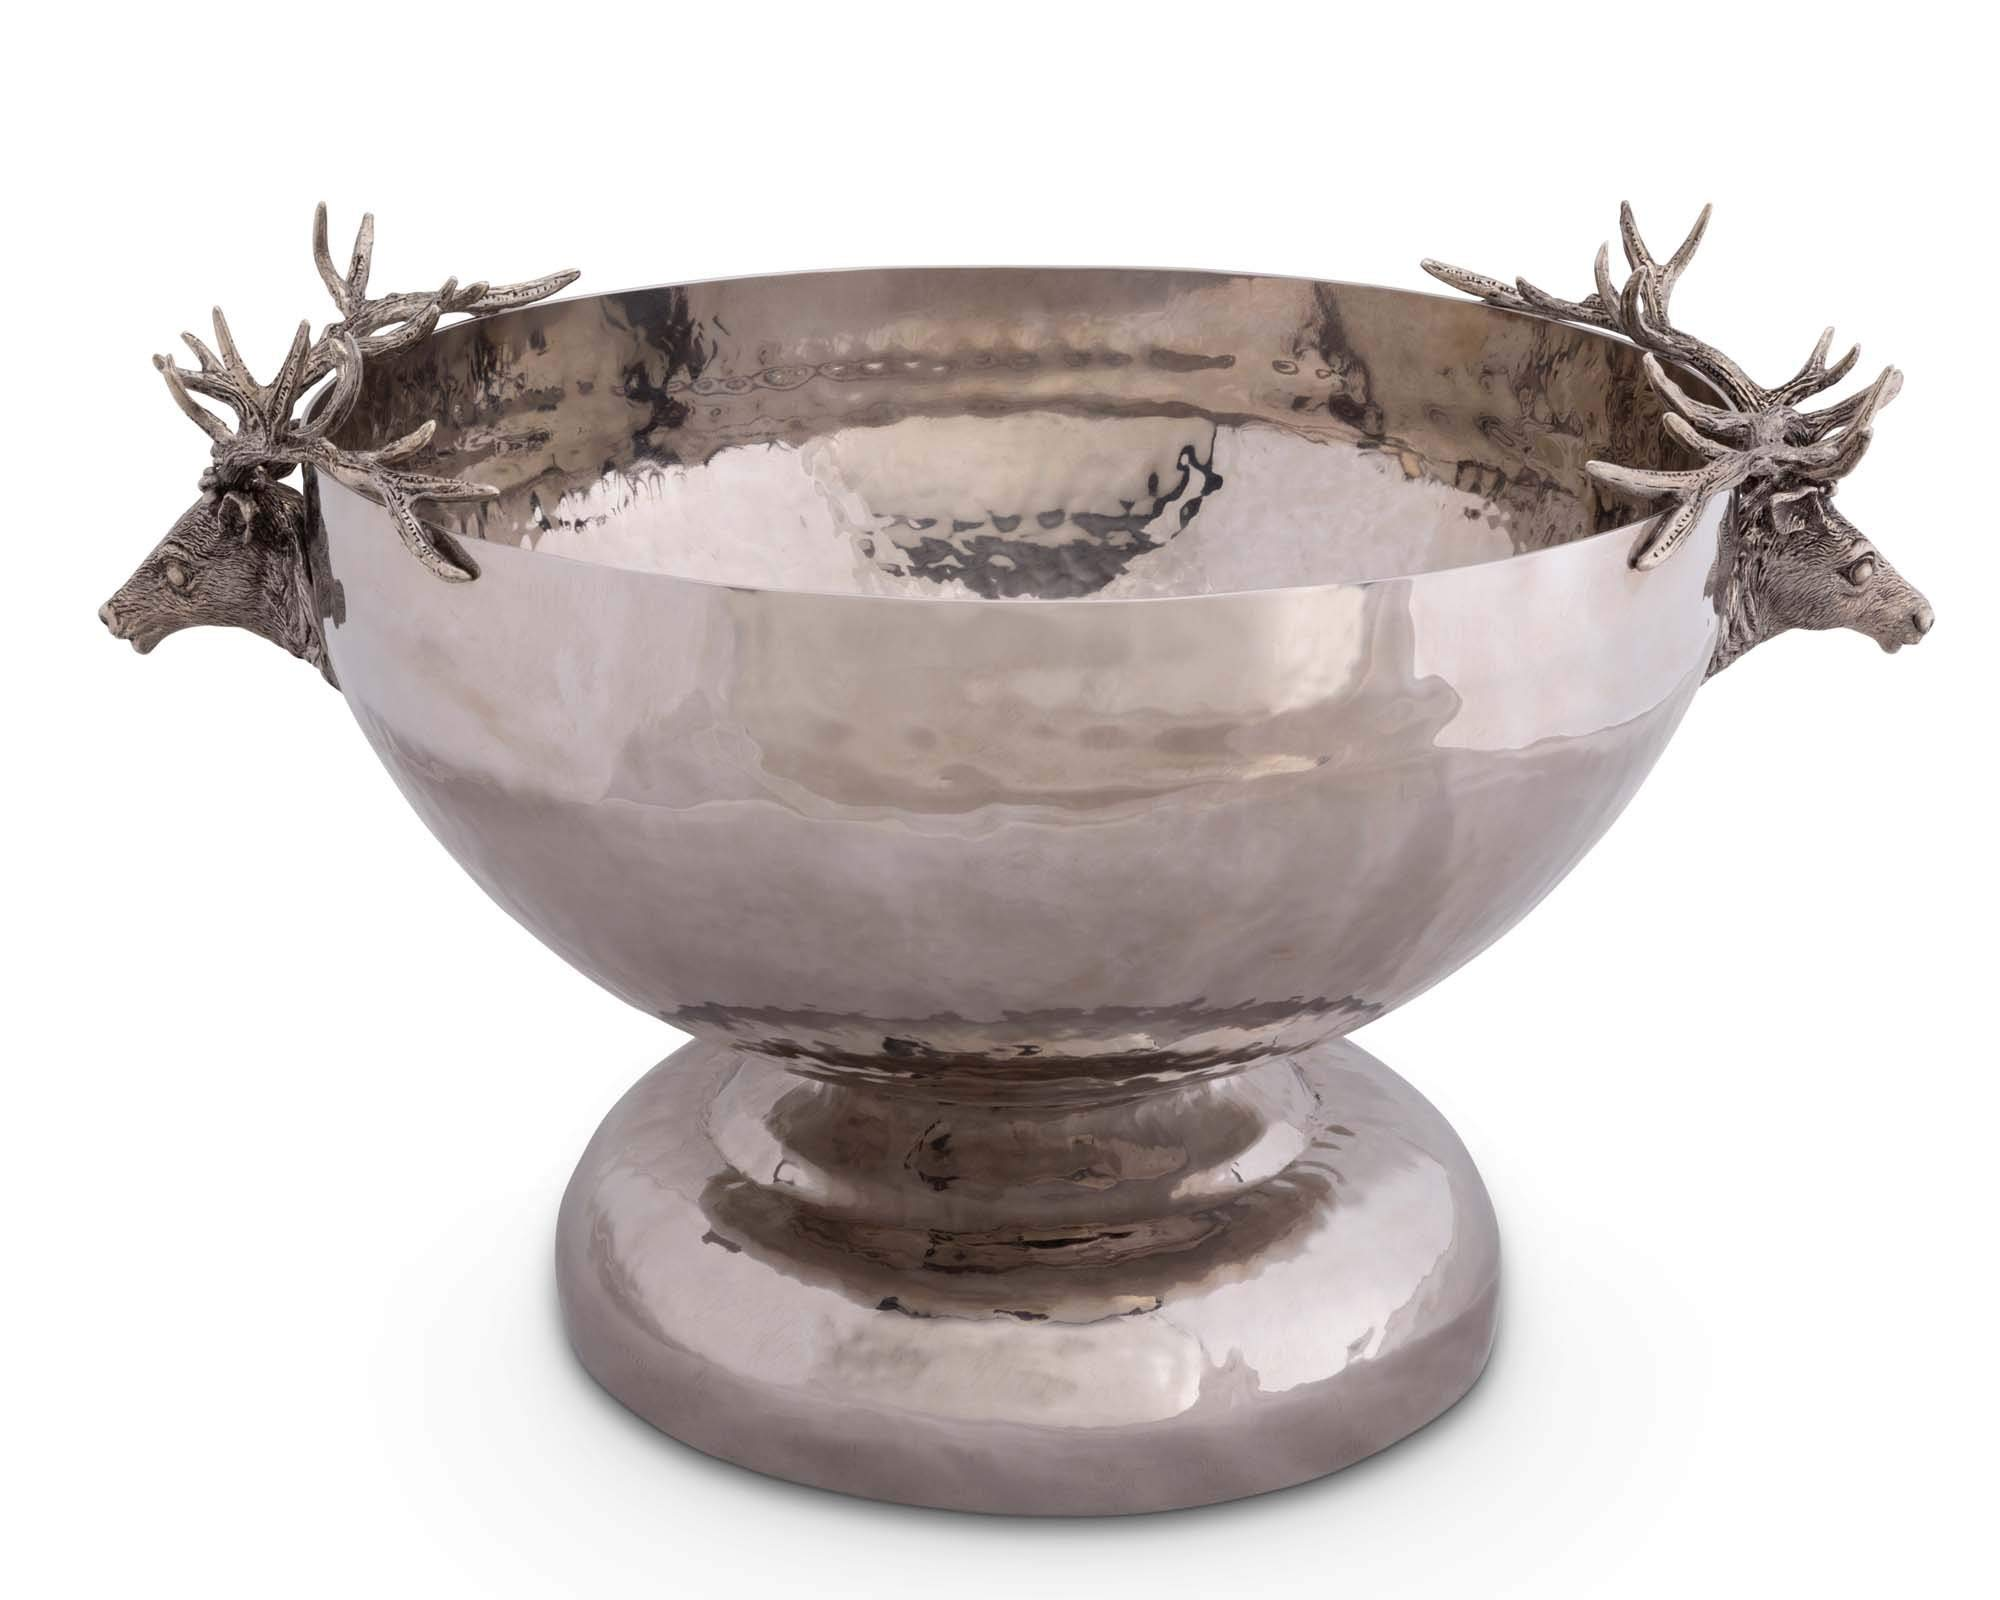 Vagabond House Pewter Elk Head Stainless Ice Tub 15'' Diameter 11.5'' Tall